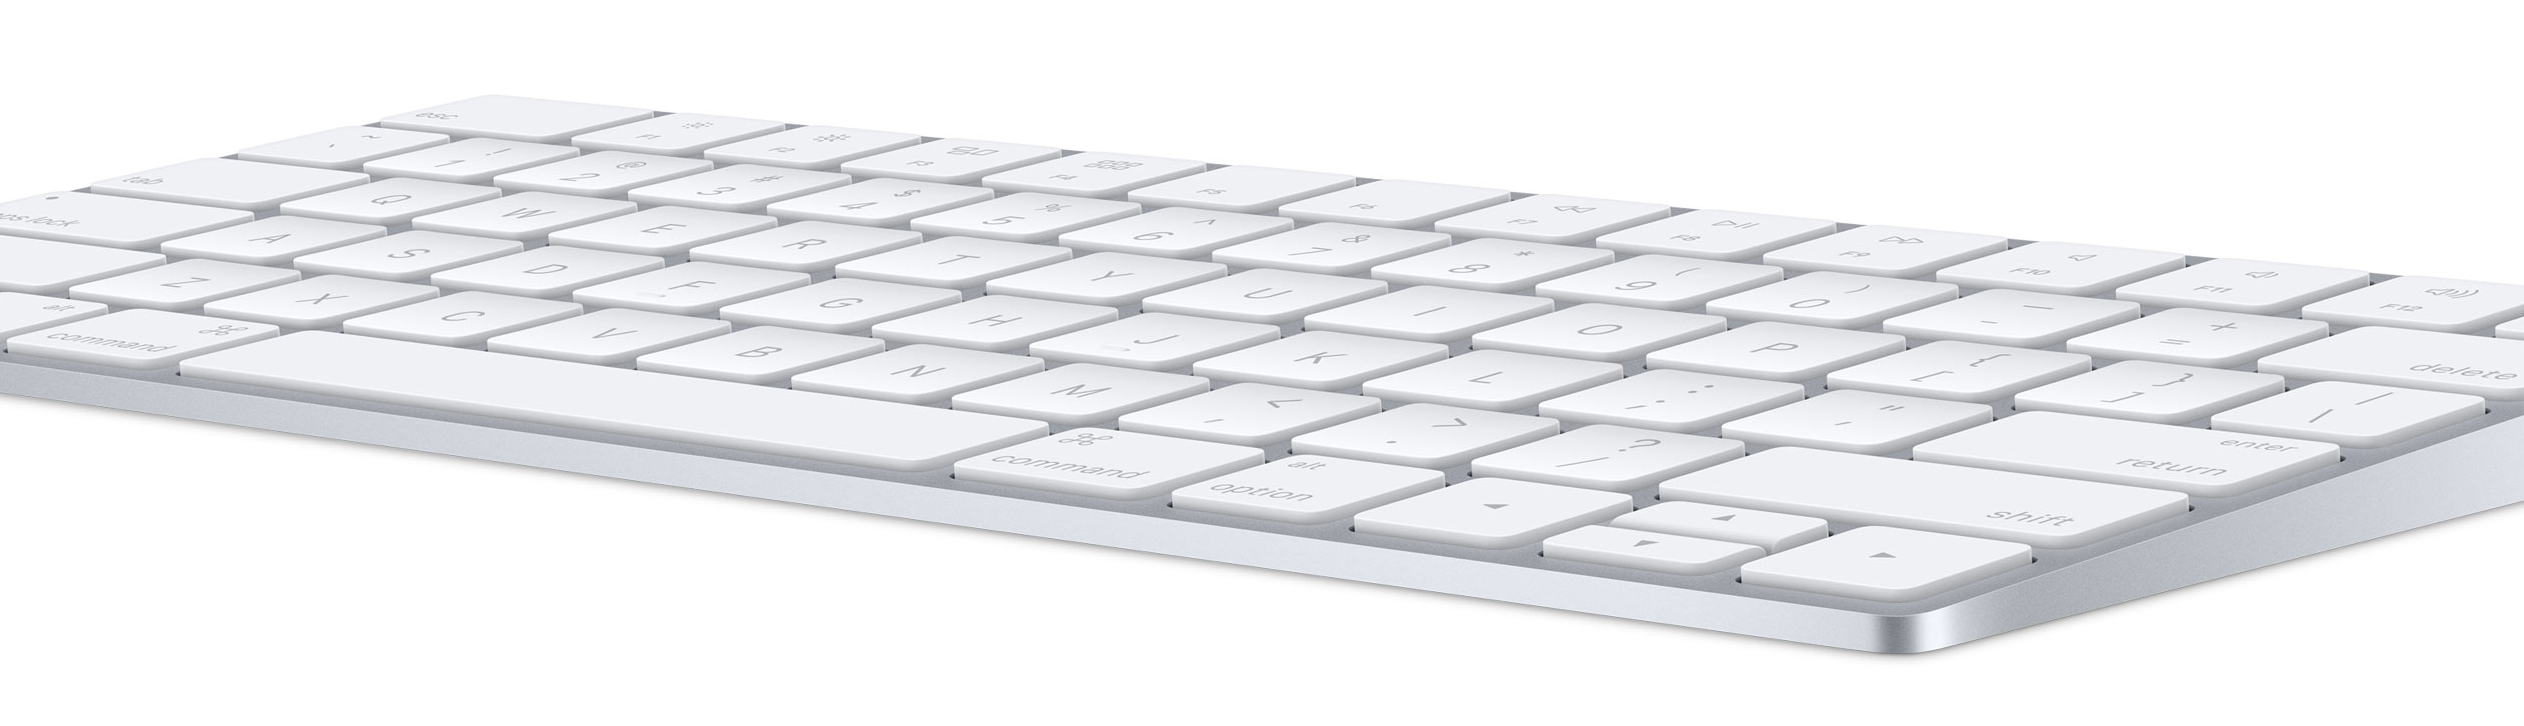 Screen Shot 2015 10 13 at 10.09.45 PM - Apple launches the Magic Trackpad 2 with Force Touch, Magic Mouse 2 & Magic Keyboard